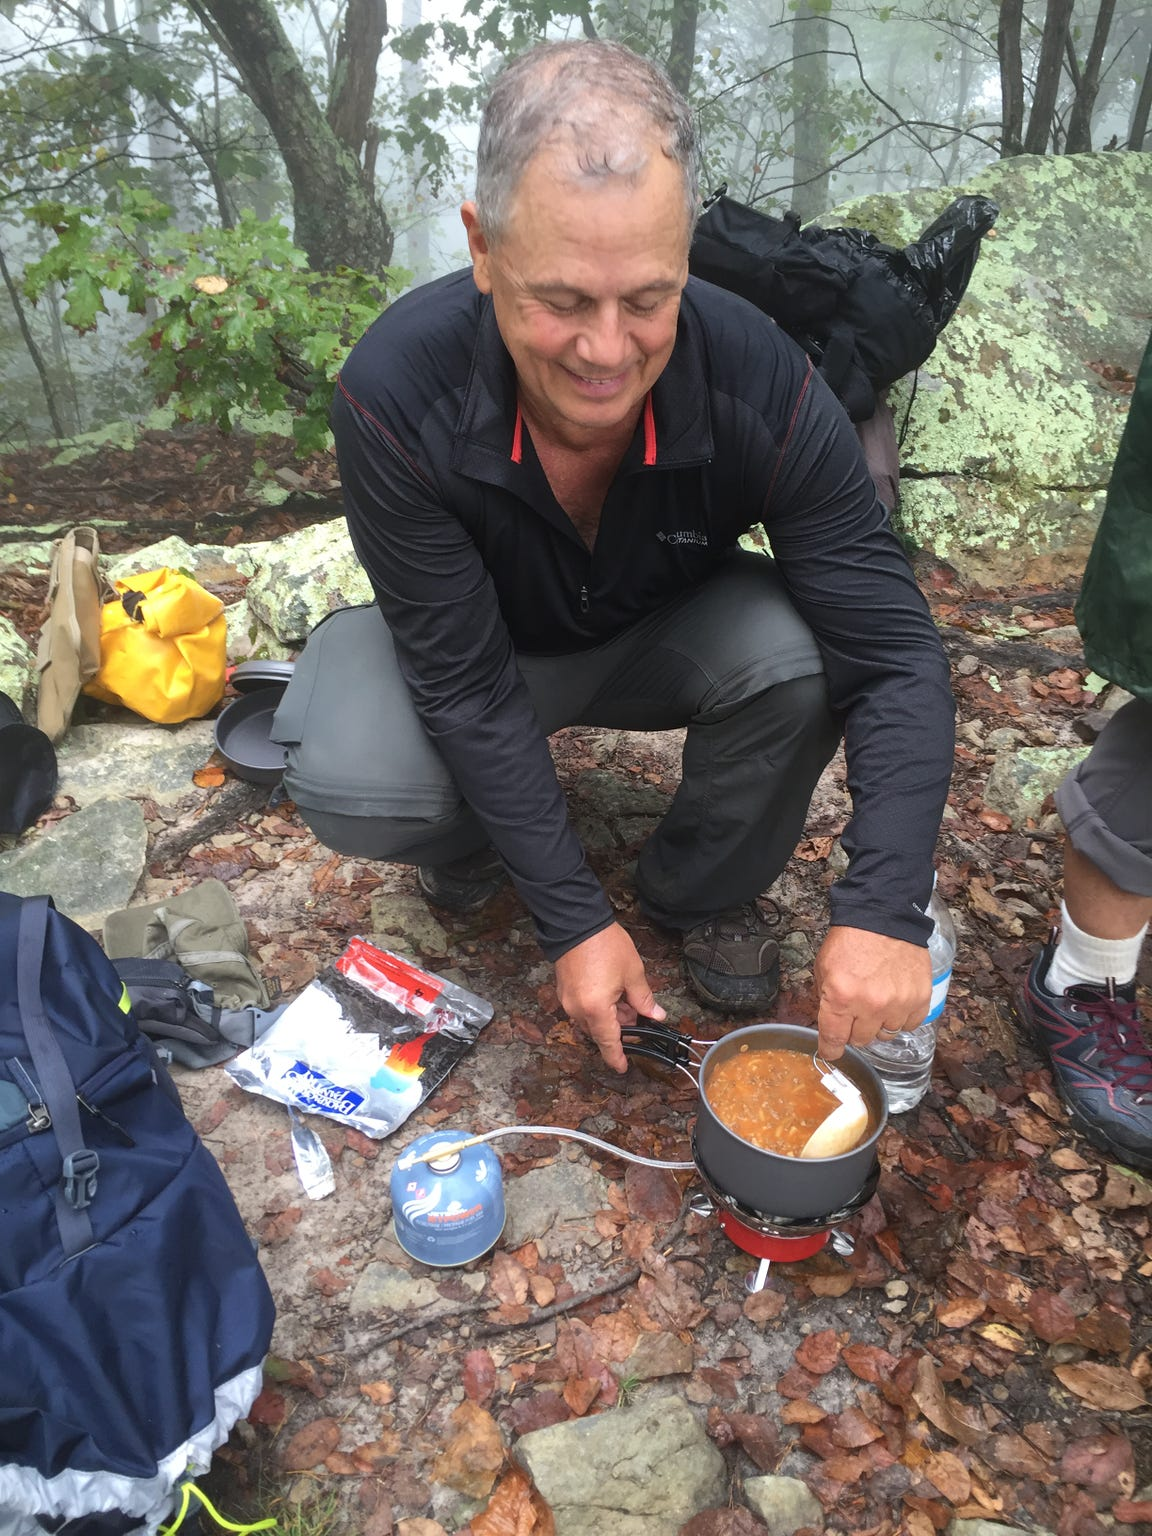 A hot lunch cooked with a micro stove on the trail